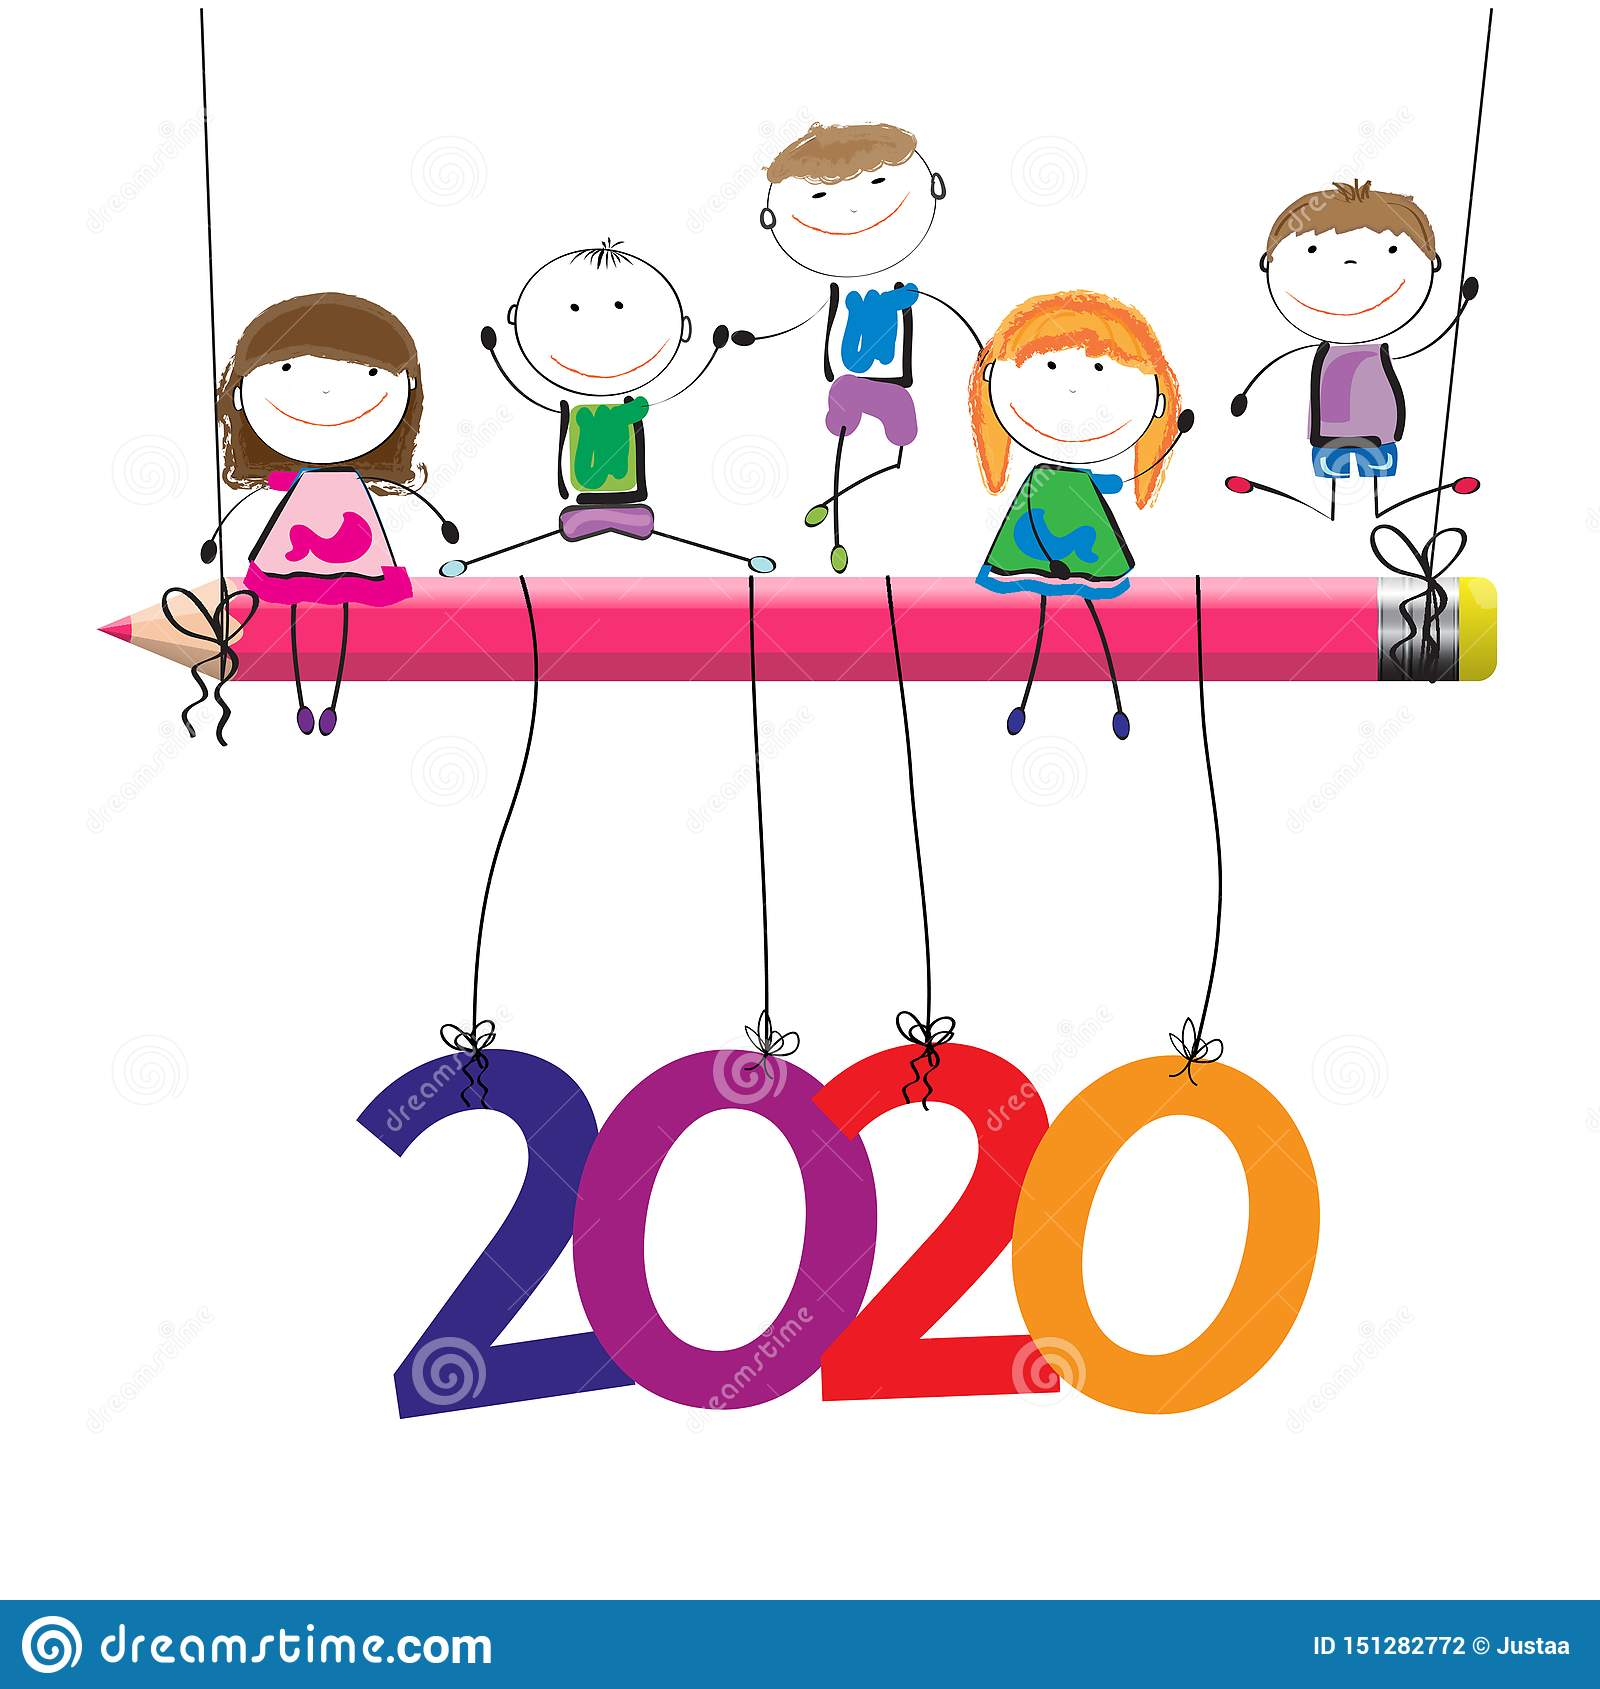 Happy New Year Clipart 2020 69